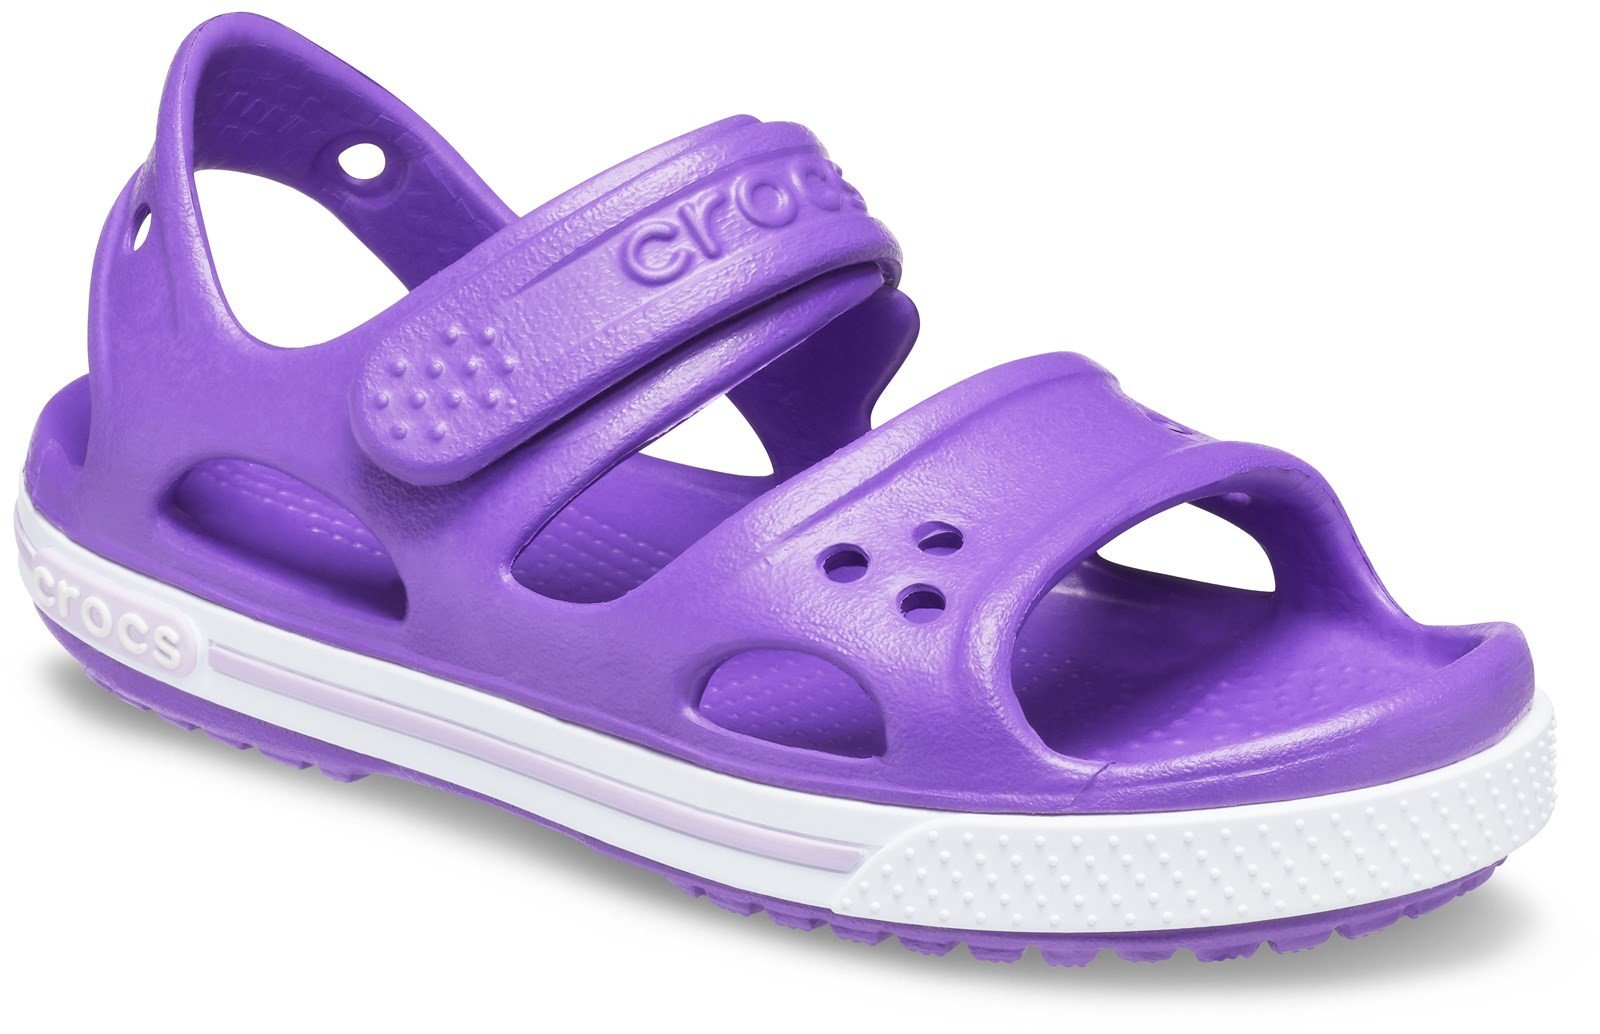 Crocs Kid's Crocband ll Touch Fastening Sandal Various Colours 28788 - Neon Purple 4